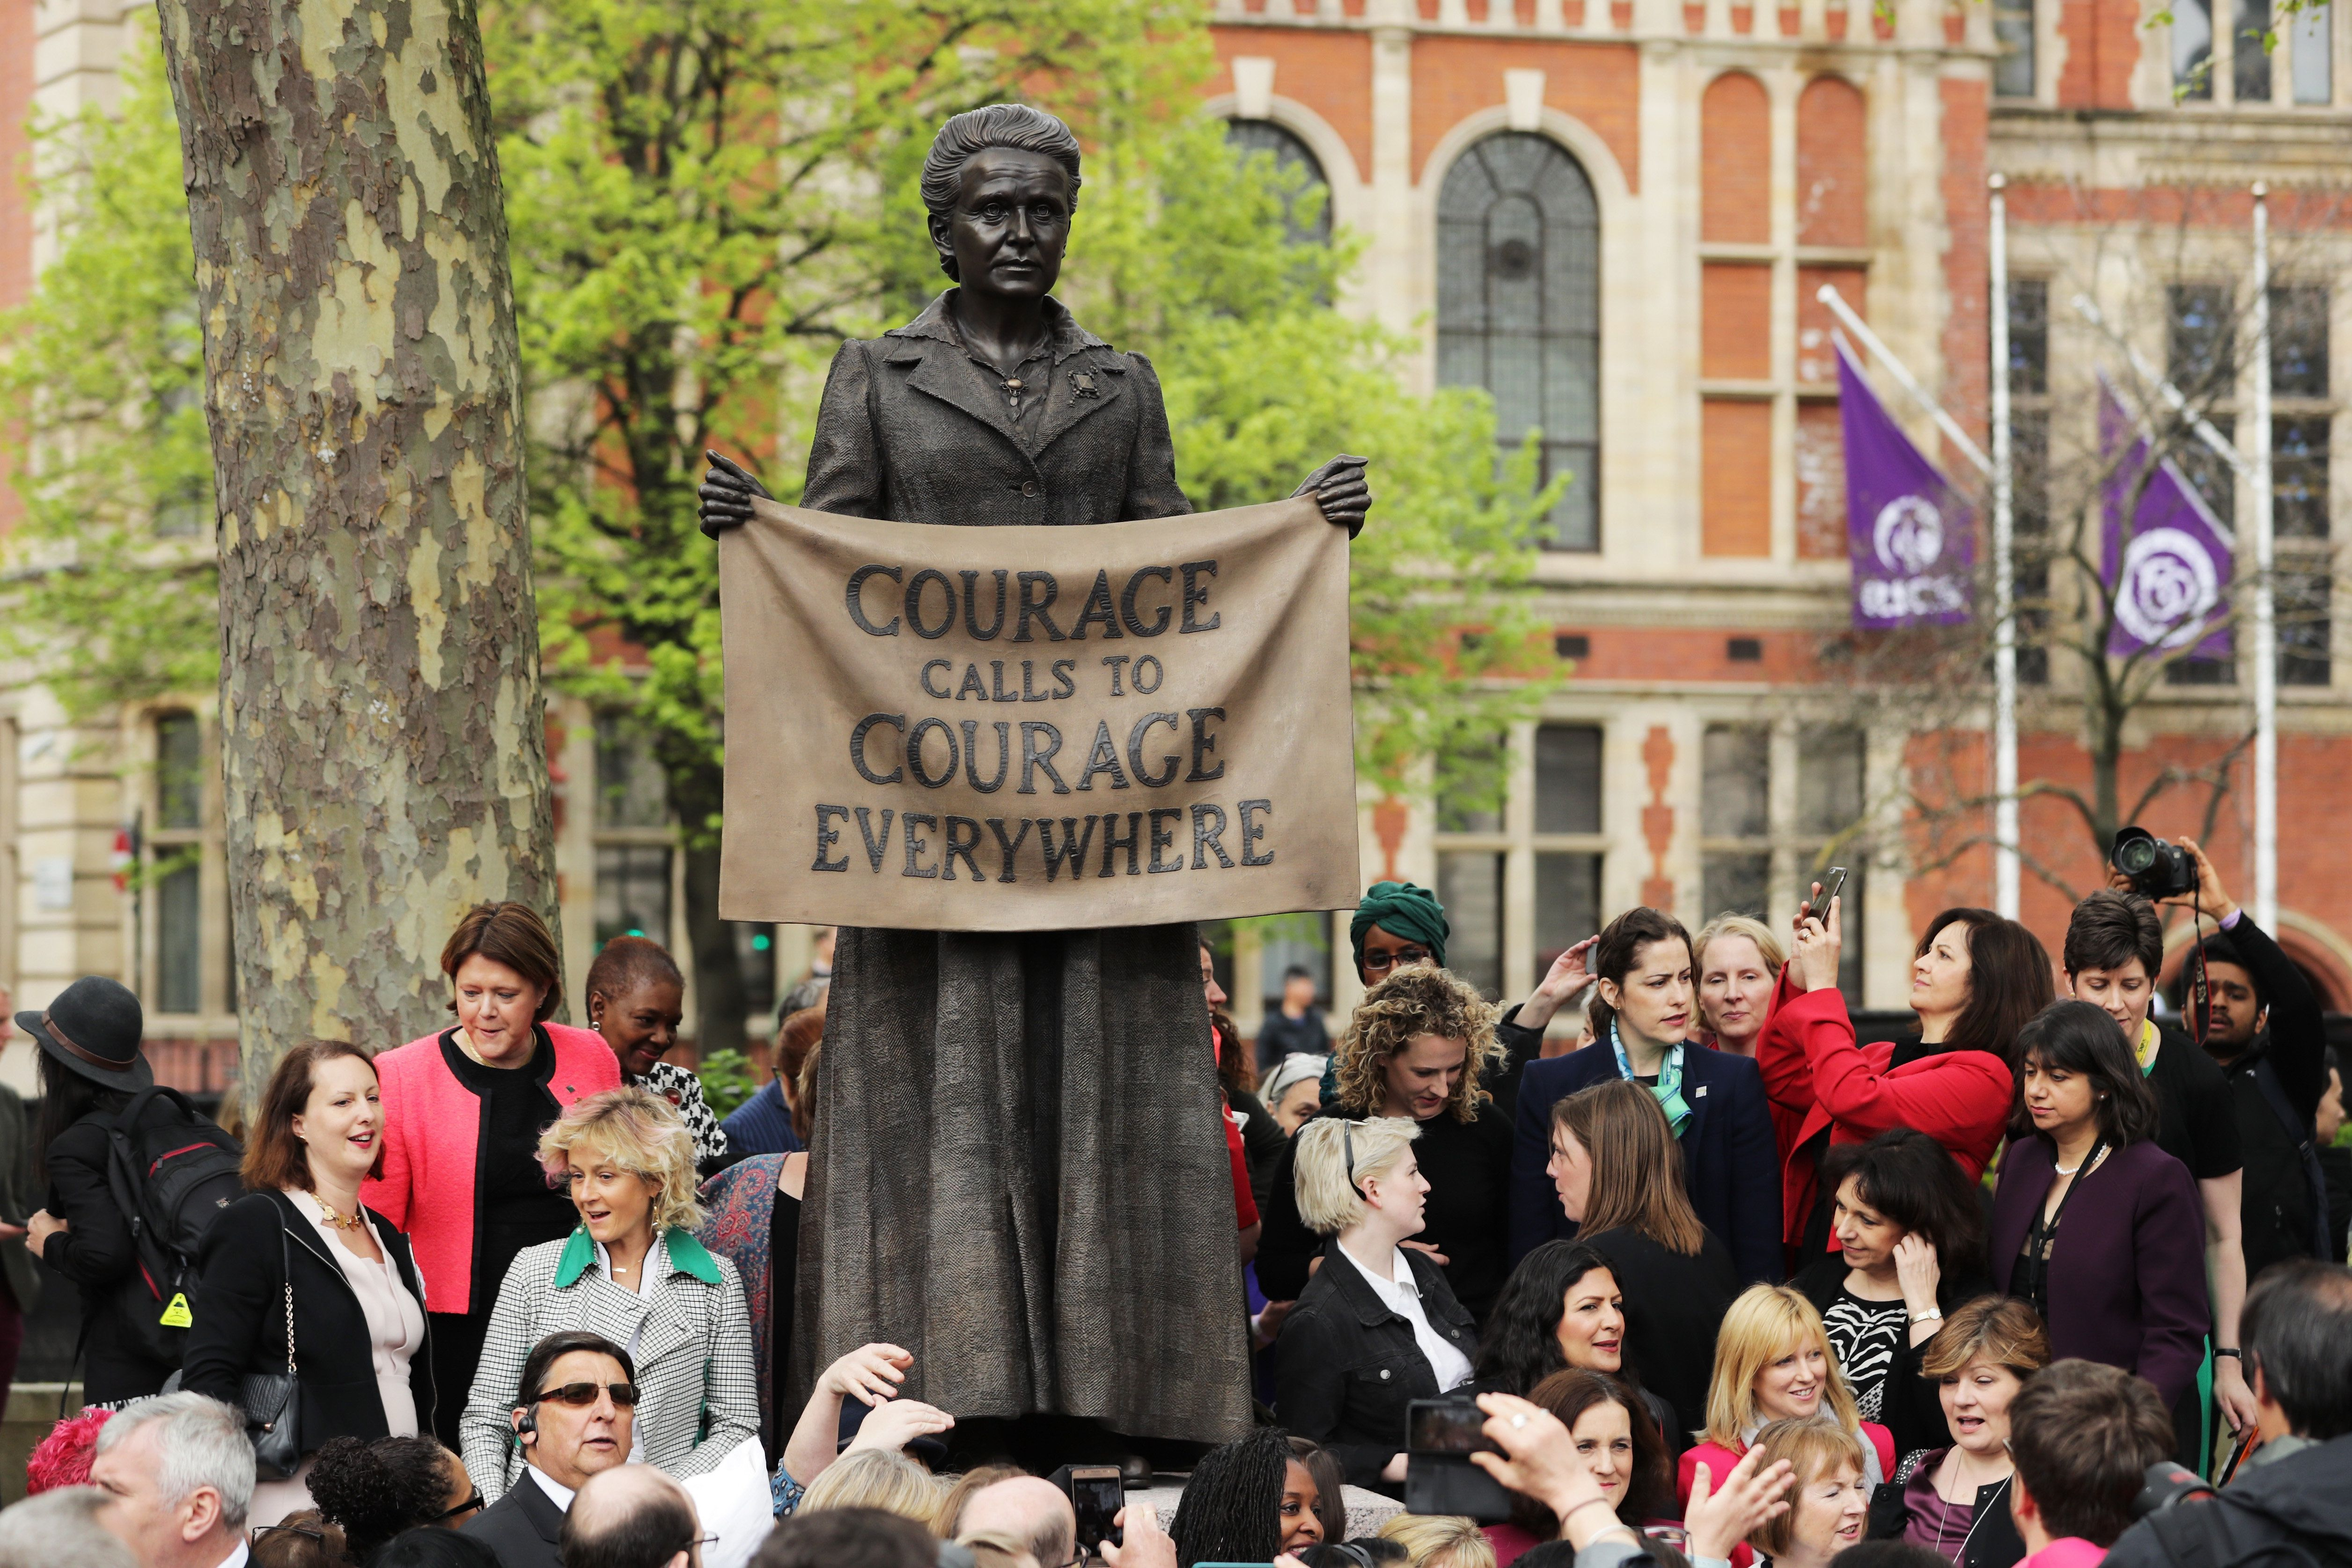 Female MPs Explain Why Millicent Fawcett Statue Is 'Absolutely Massive' For Women And Girls